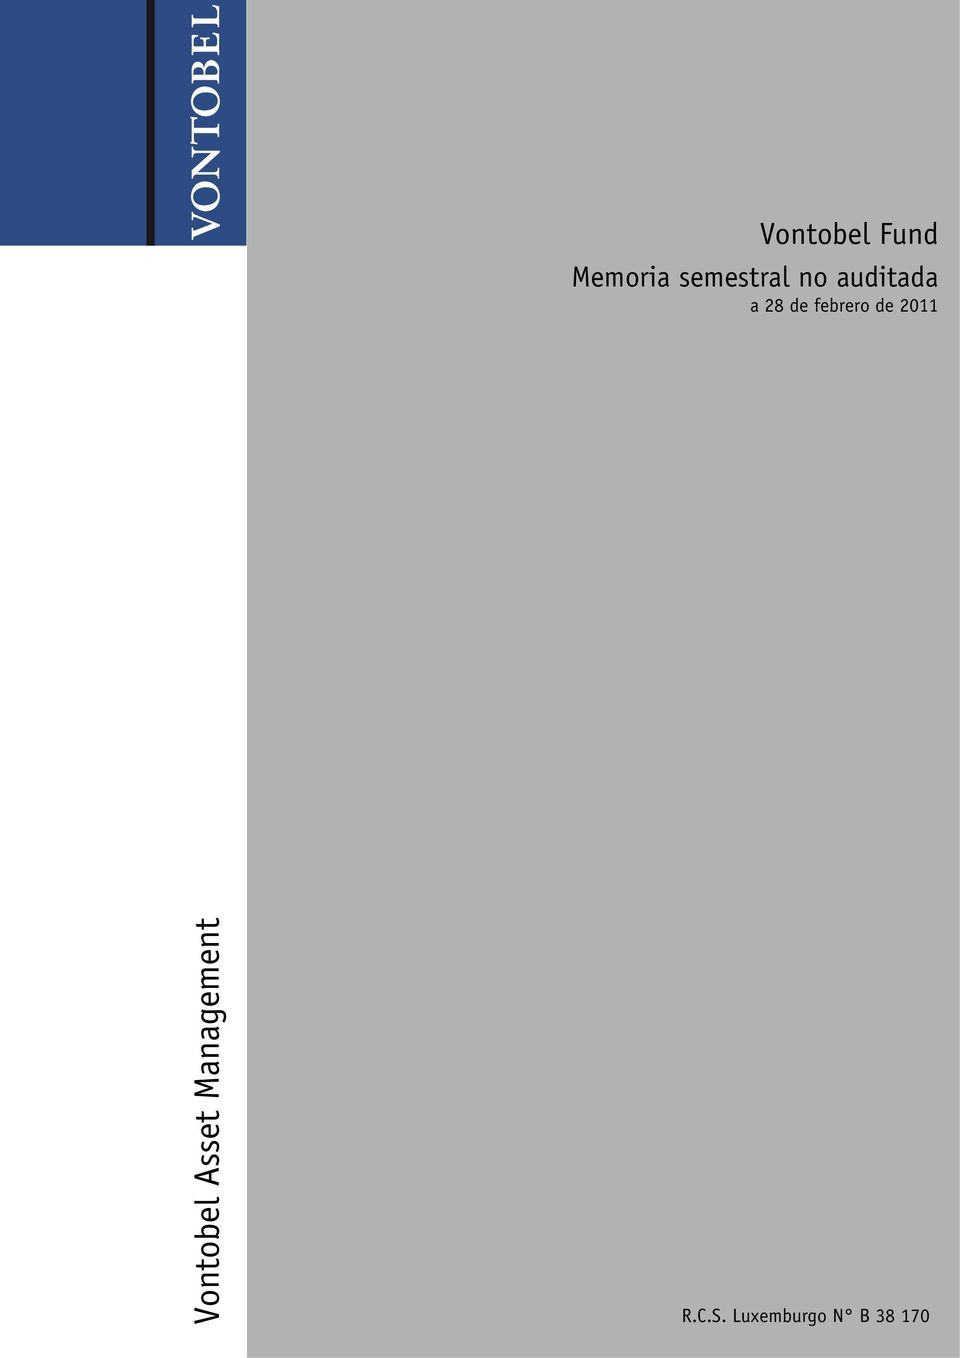 Vontobel Fund -- Euro Mid Yield Bond Vontobel Fund -- Bond Select Vontobel Fund -- Japanese Equity Vontobel